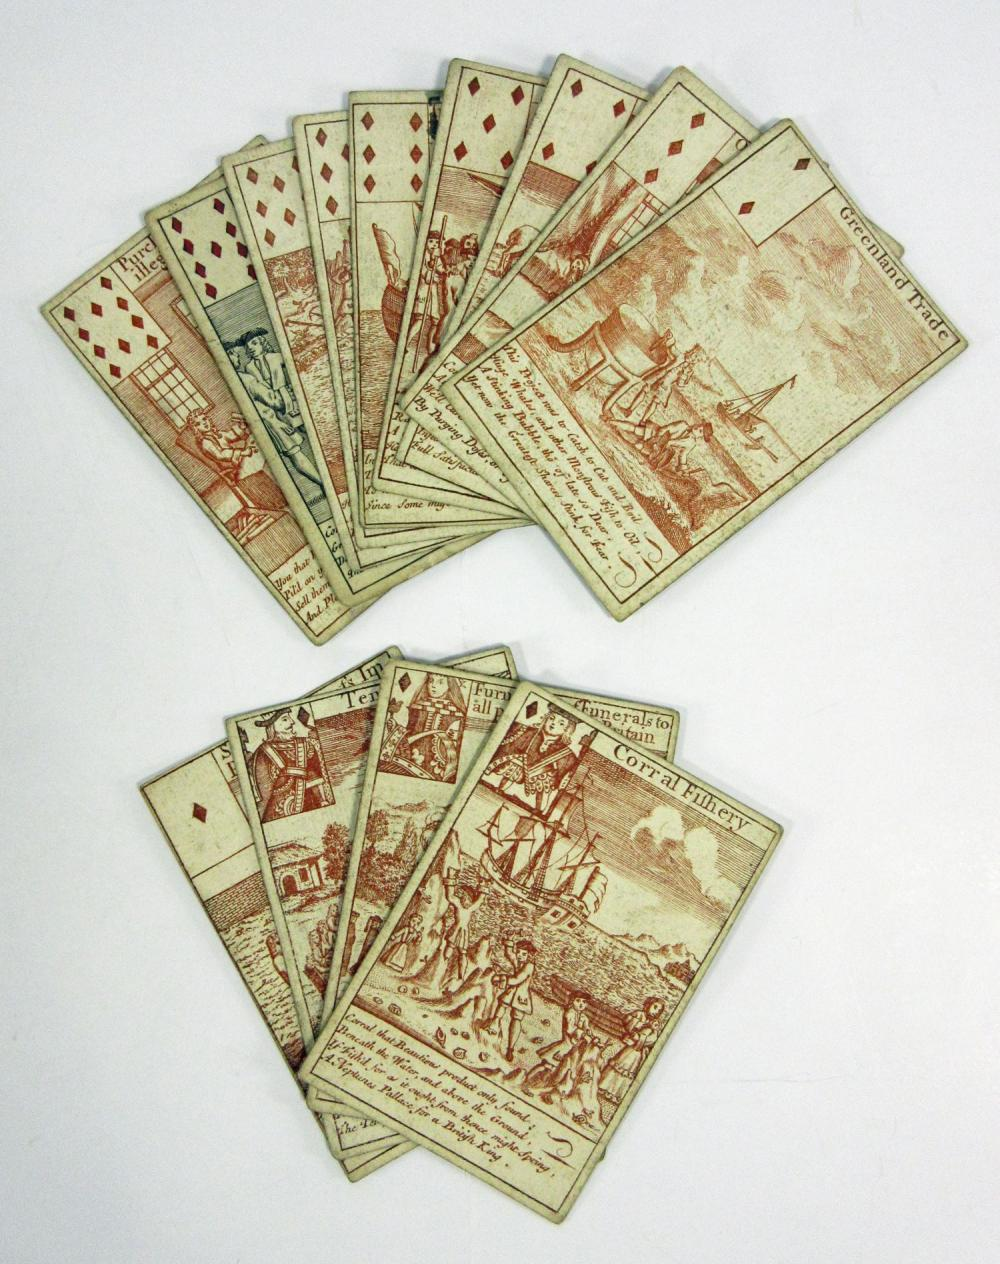 World's Most Important and Valuable Deck of Cards?! 1720 South Sea Bubble Playing Cards